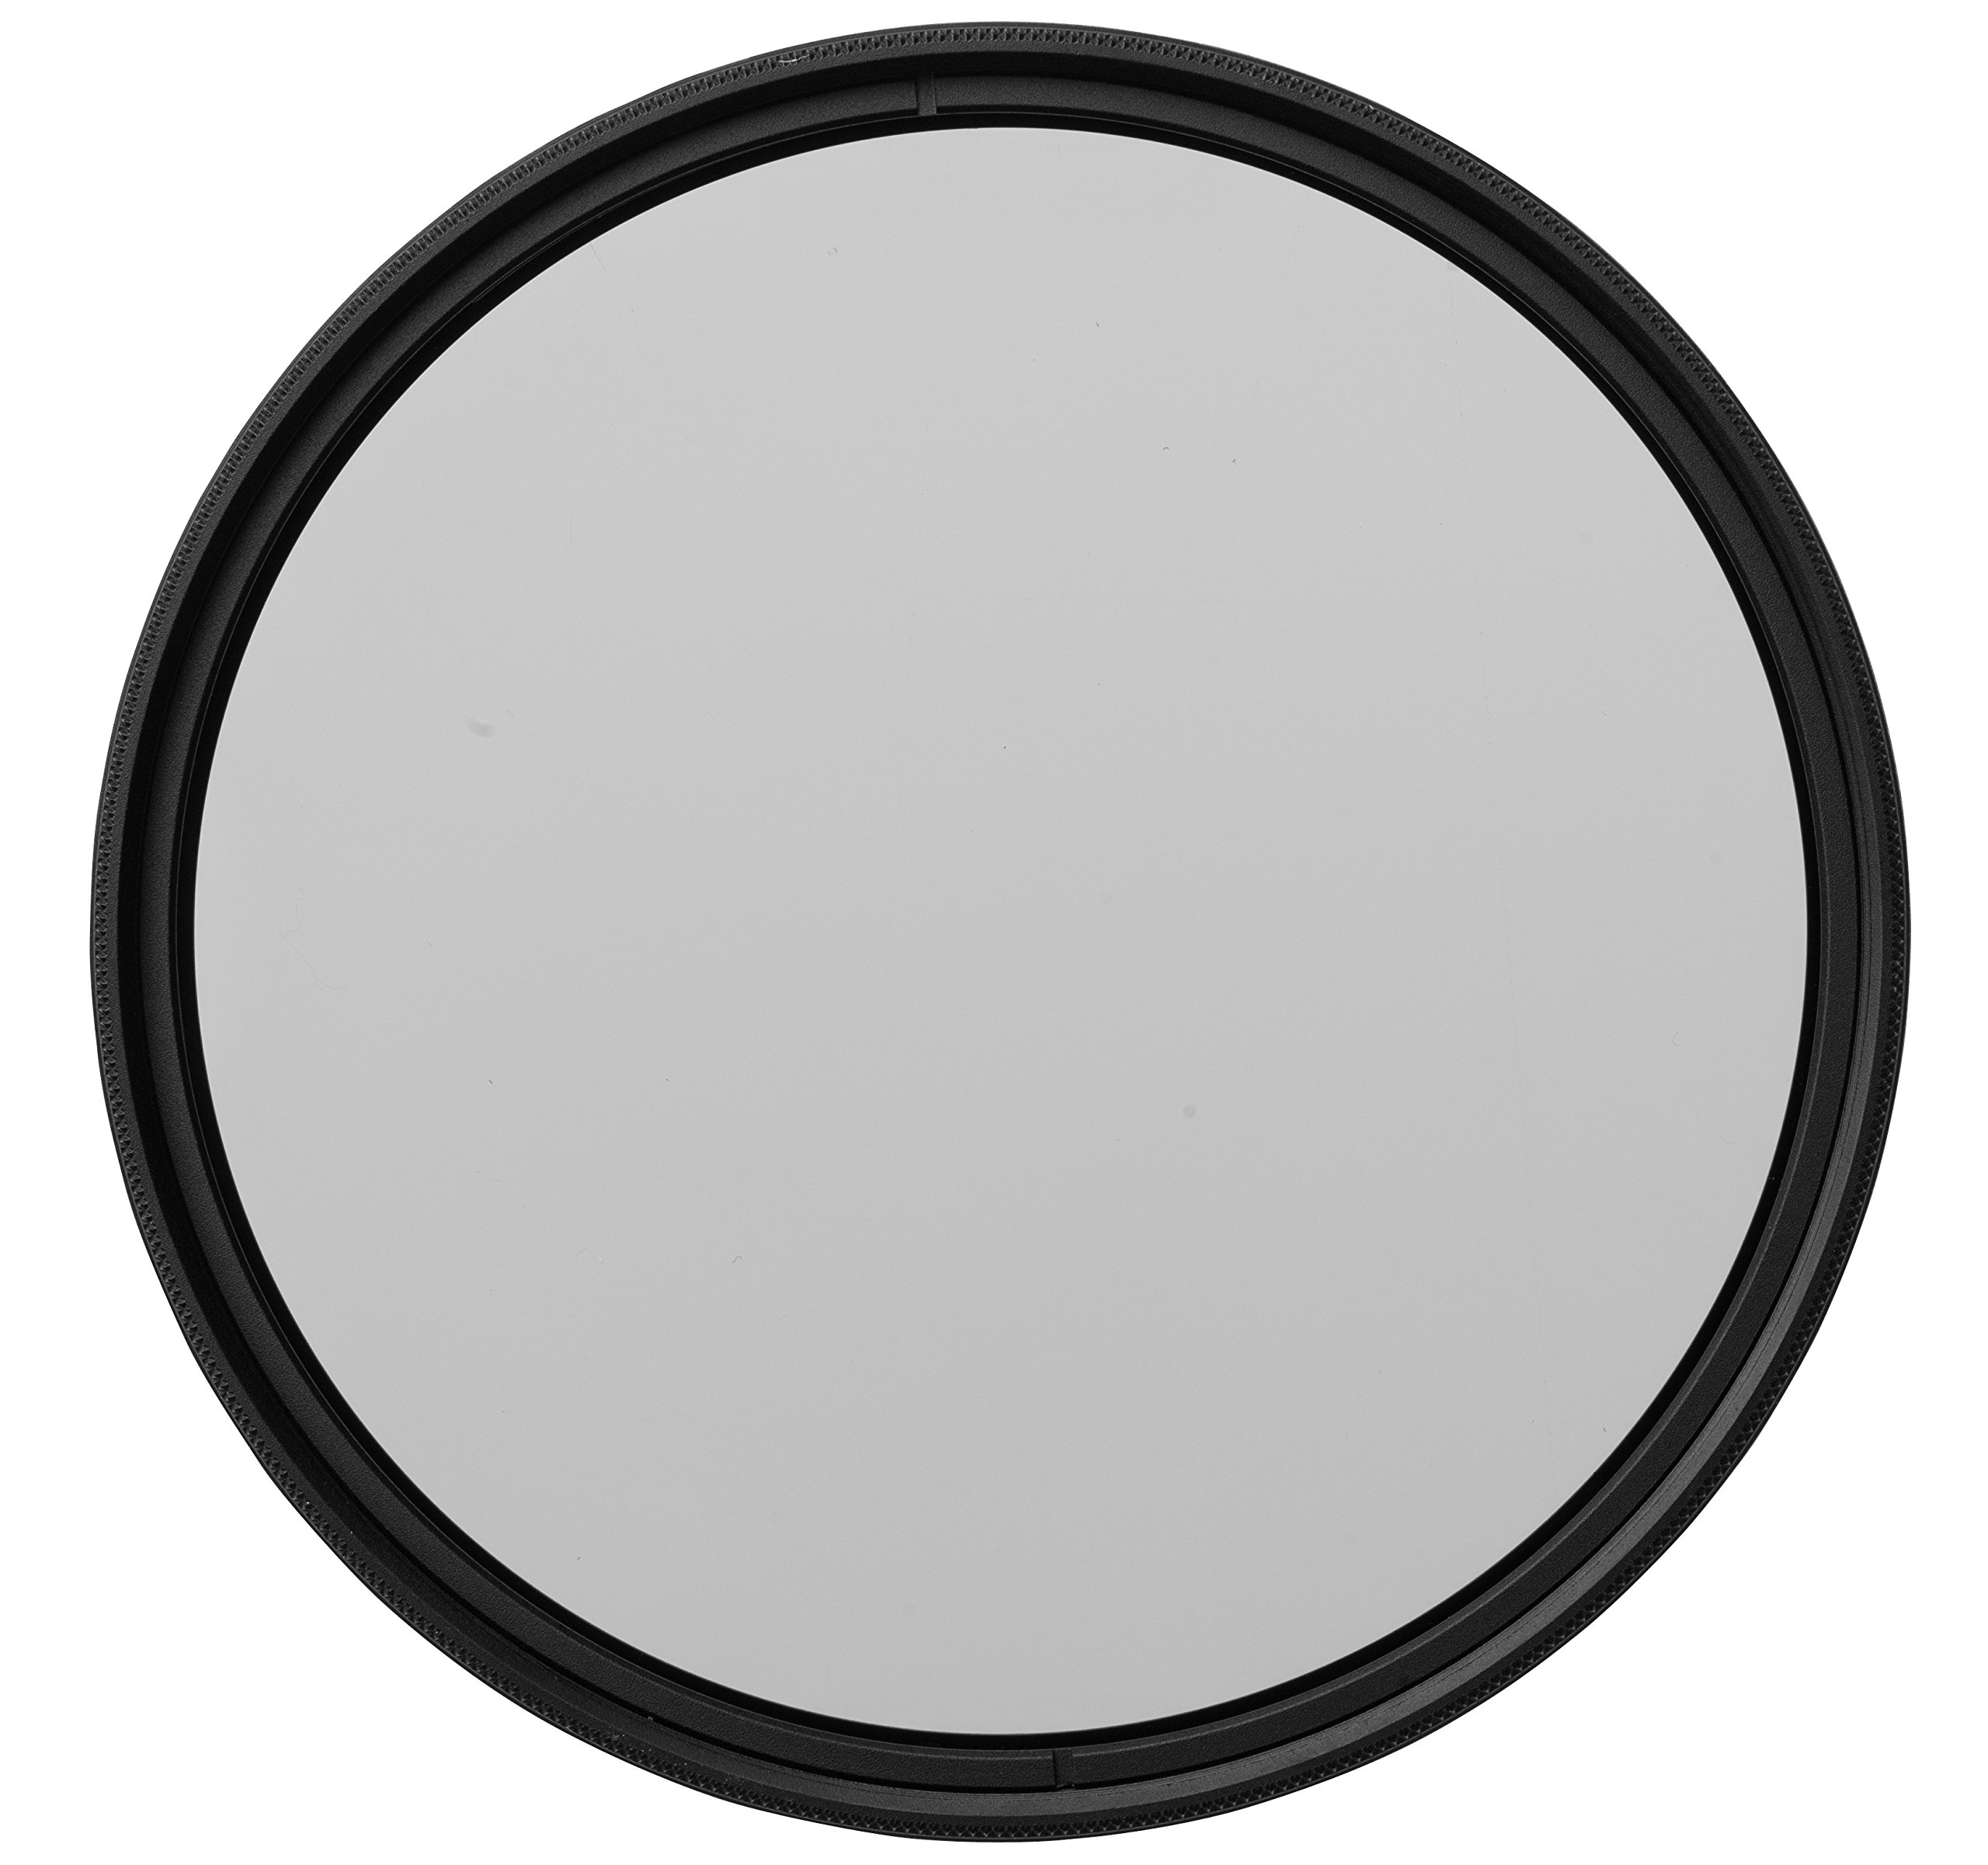 Vu Sion 77mm Variable Neutral Density Filter (VSNDV77) by VU